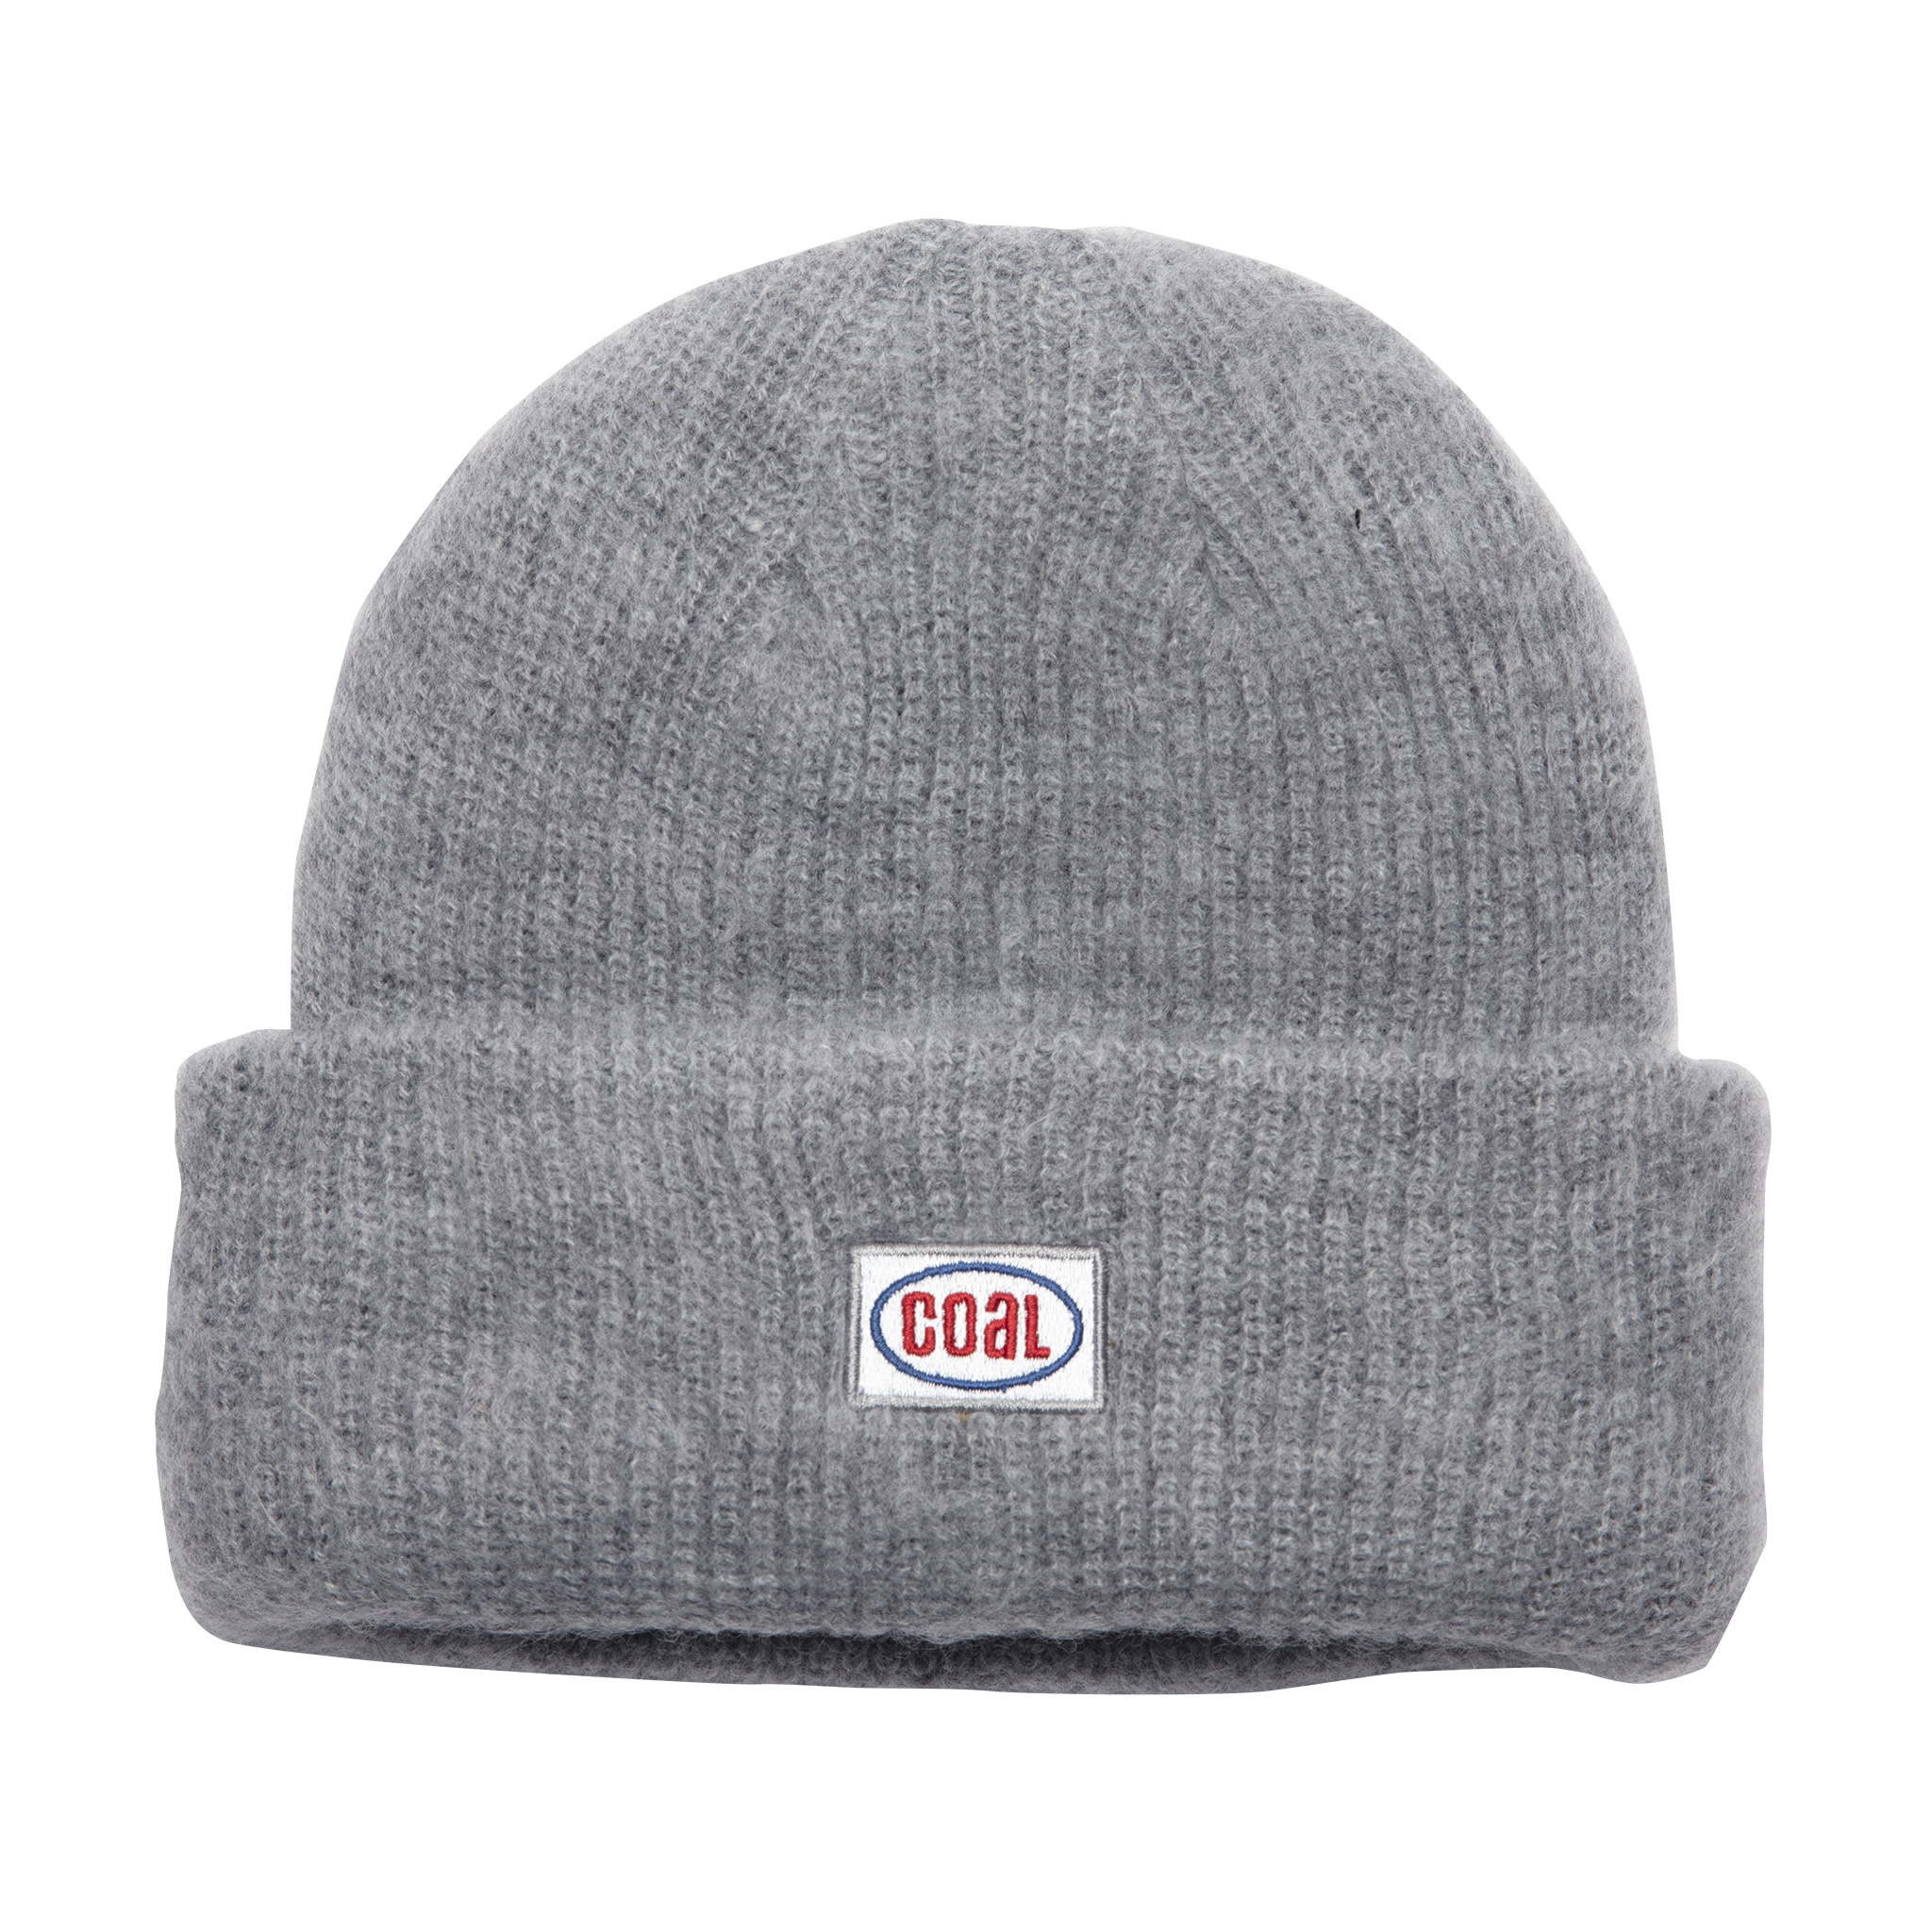 Coal Coal The Earl Beanie - Heather Grey